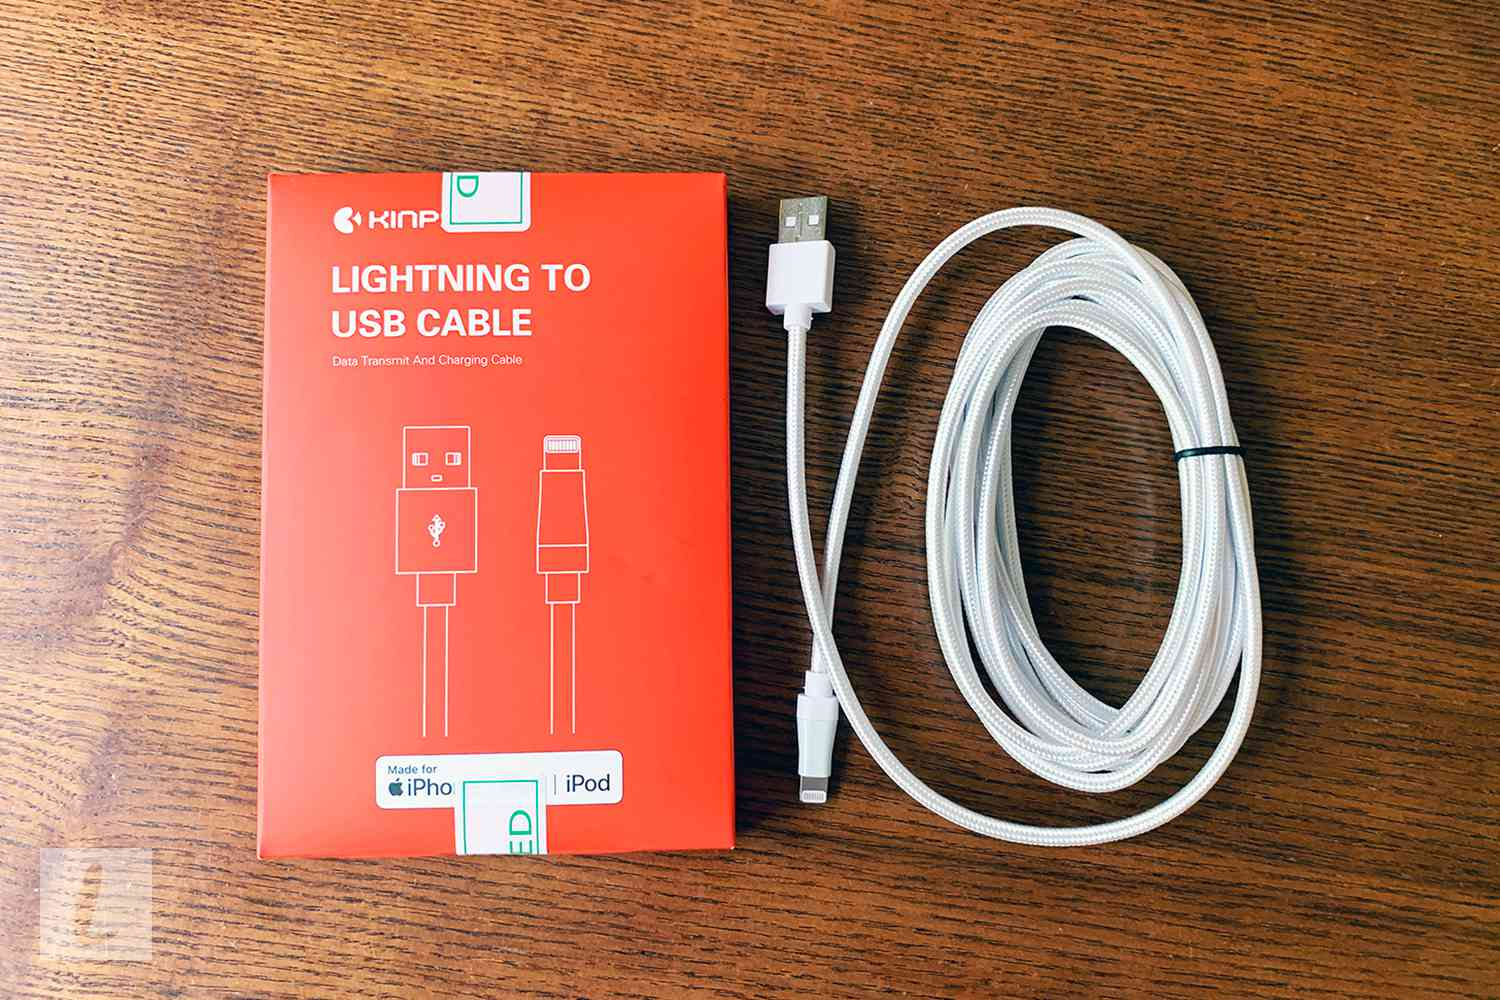 Kinps 10-foot Lightning Cable